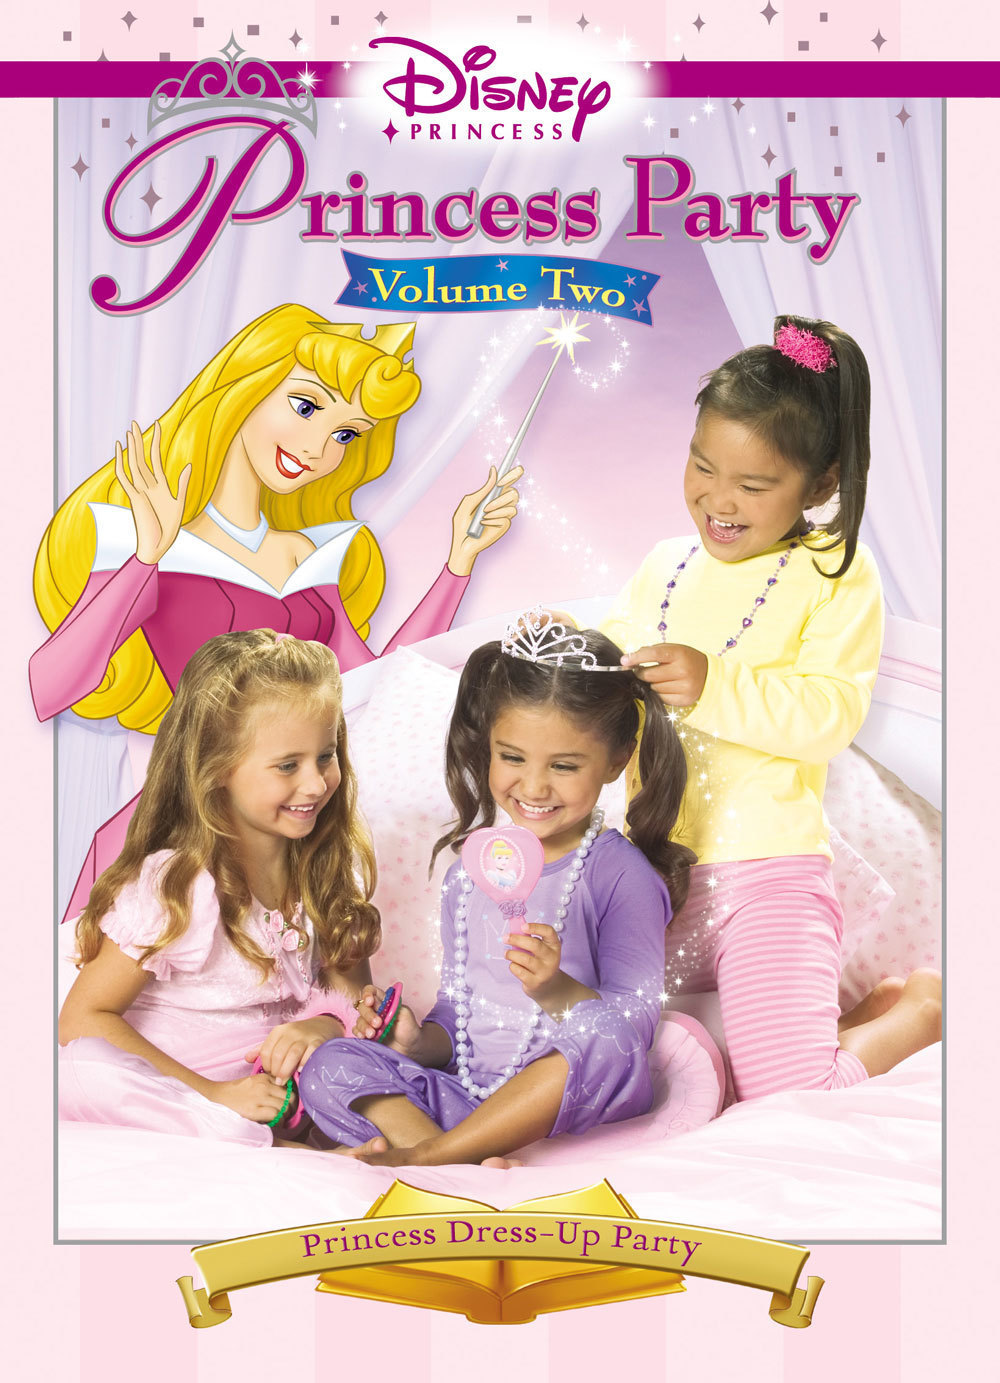 Disney Princess Party: Volume Two